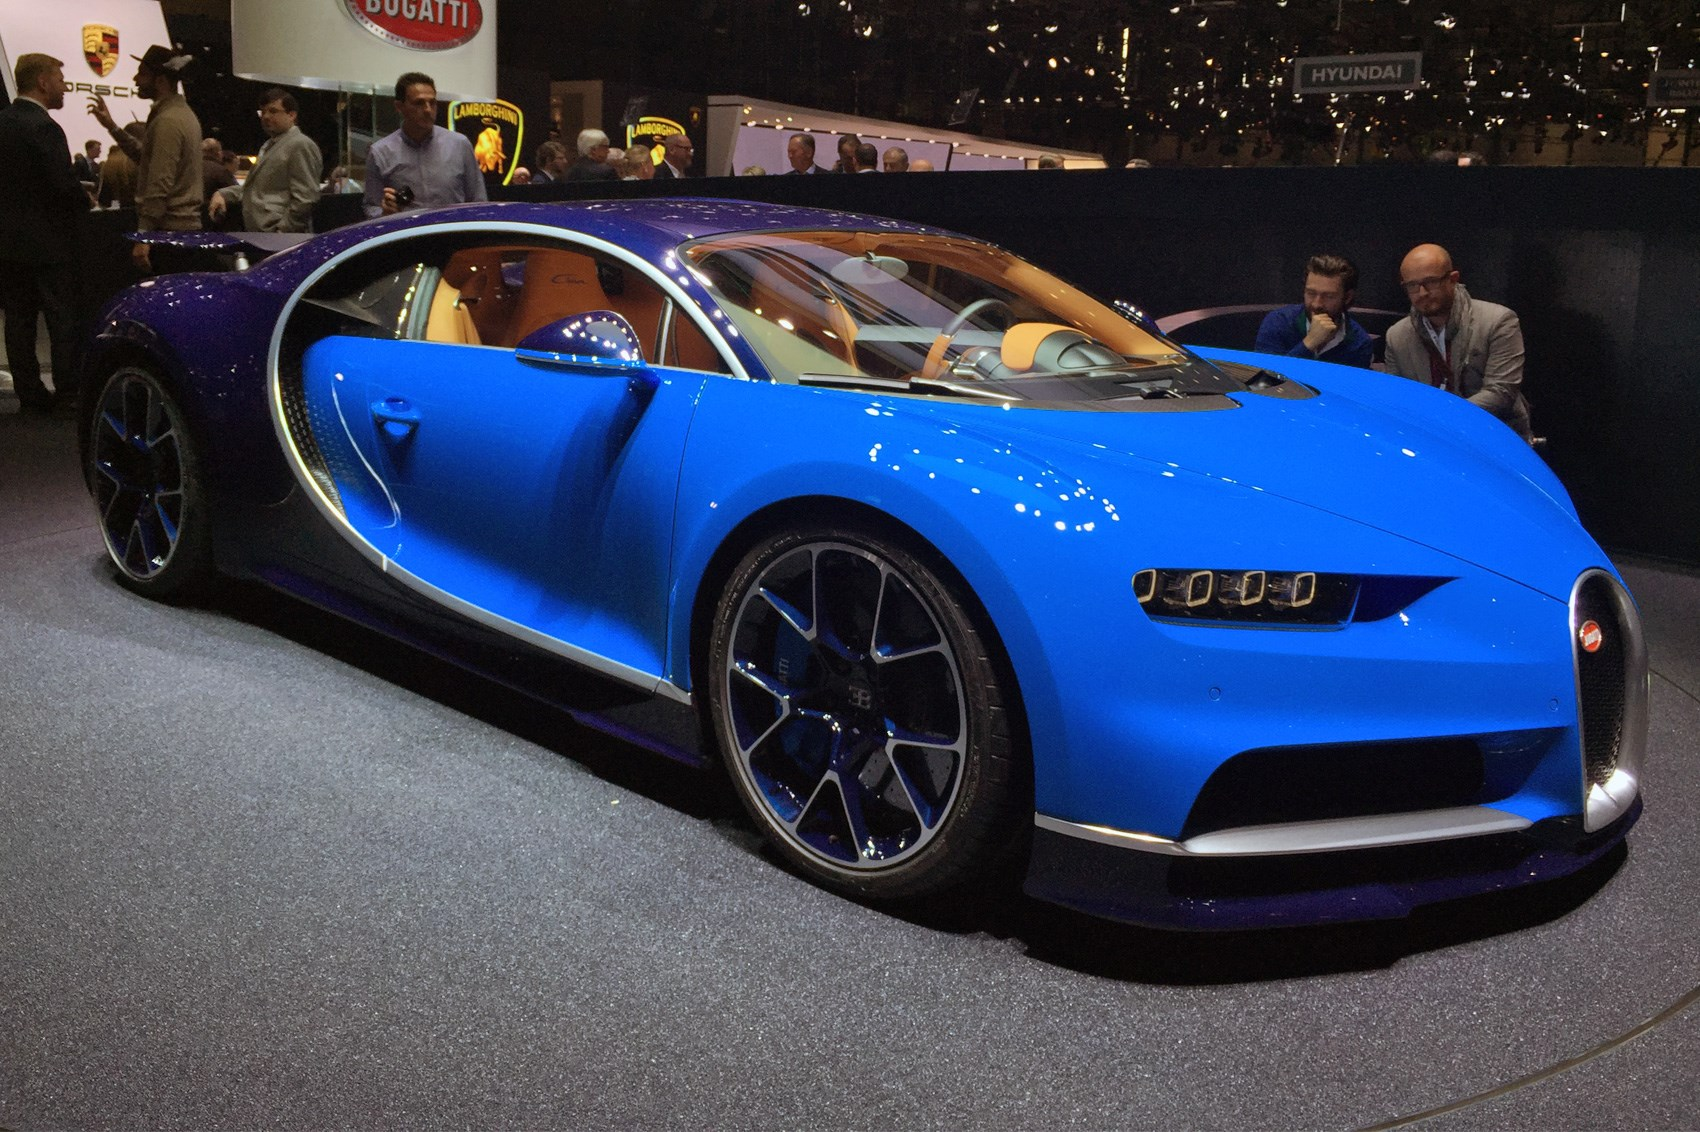 Chiron on W16 Engine